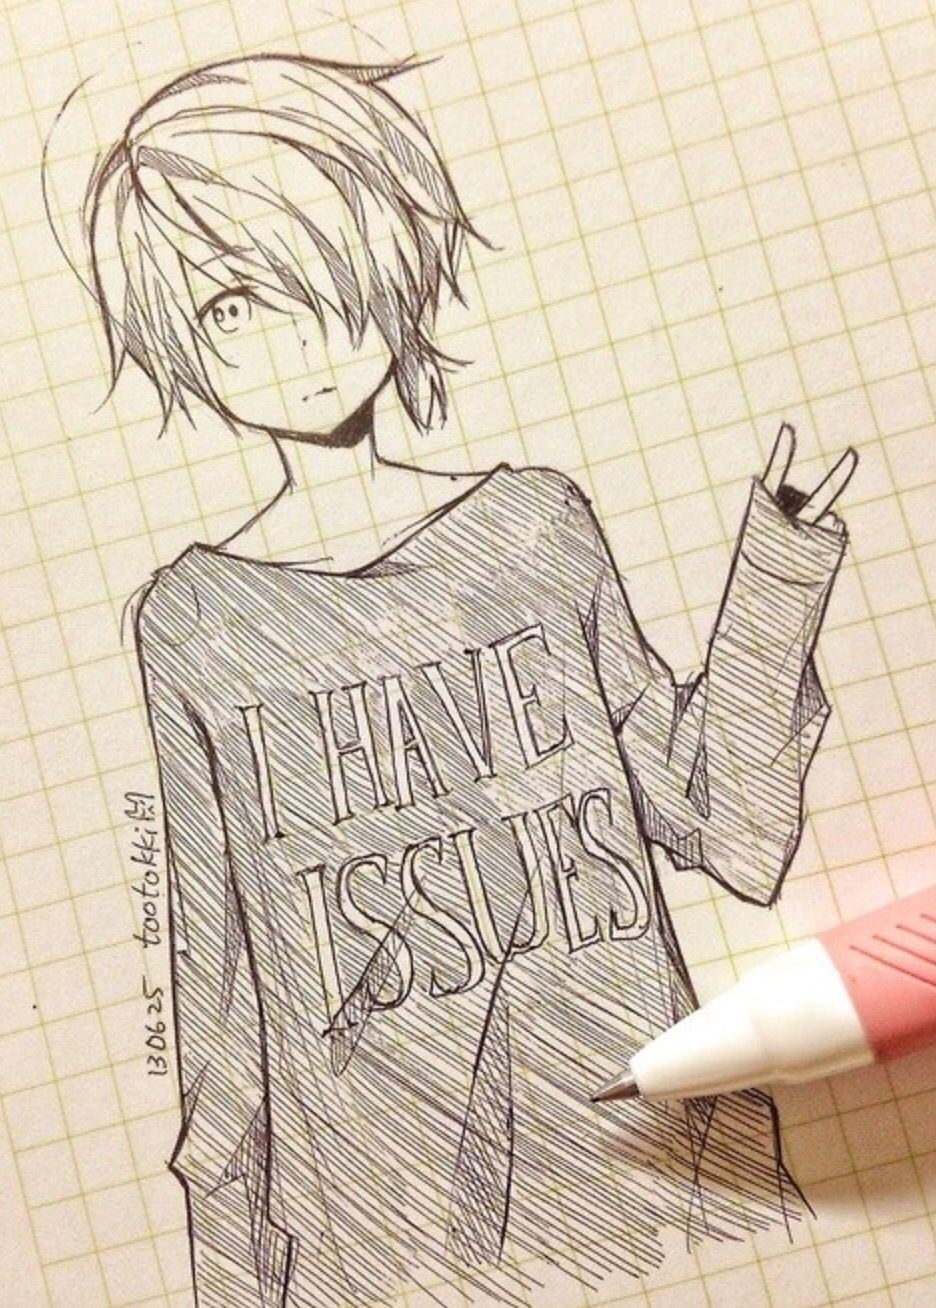 936x1308 Cute Anime Drawing Tootokki I Have Issues Sweater Manga Art